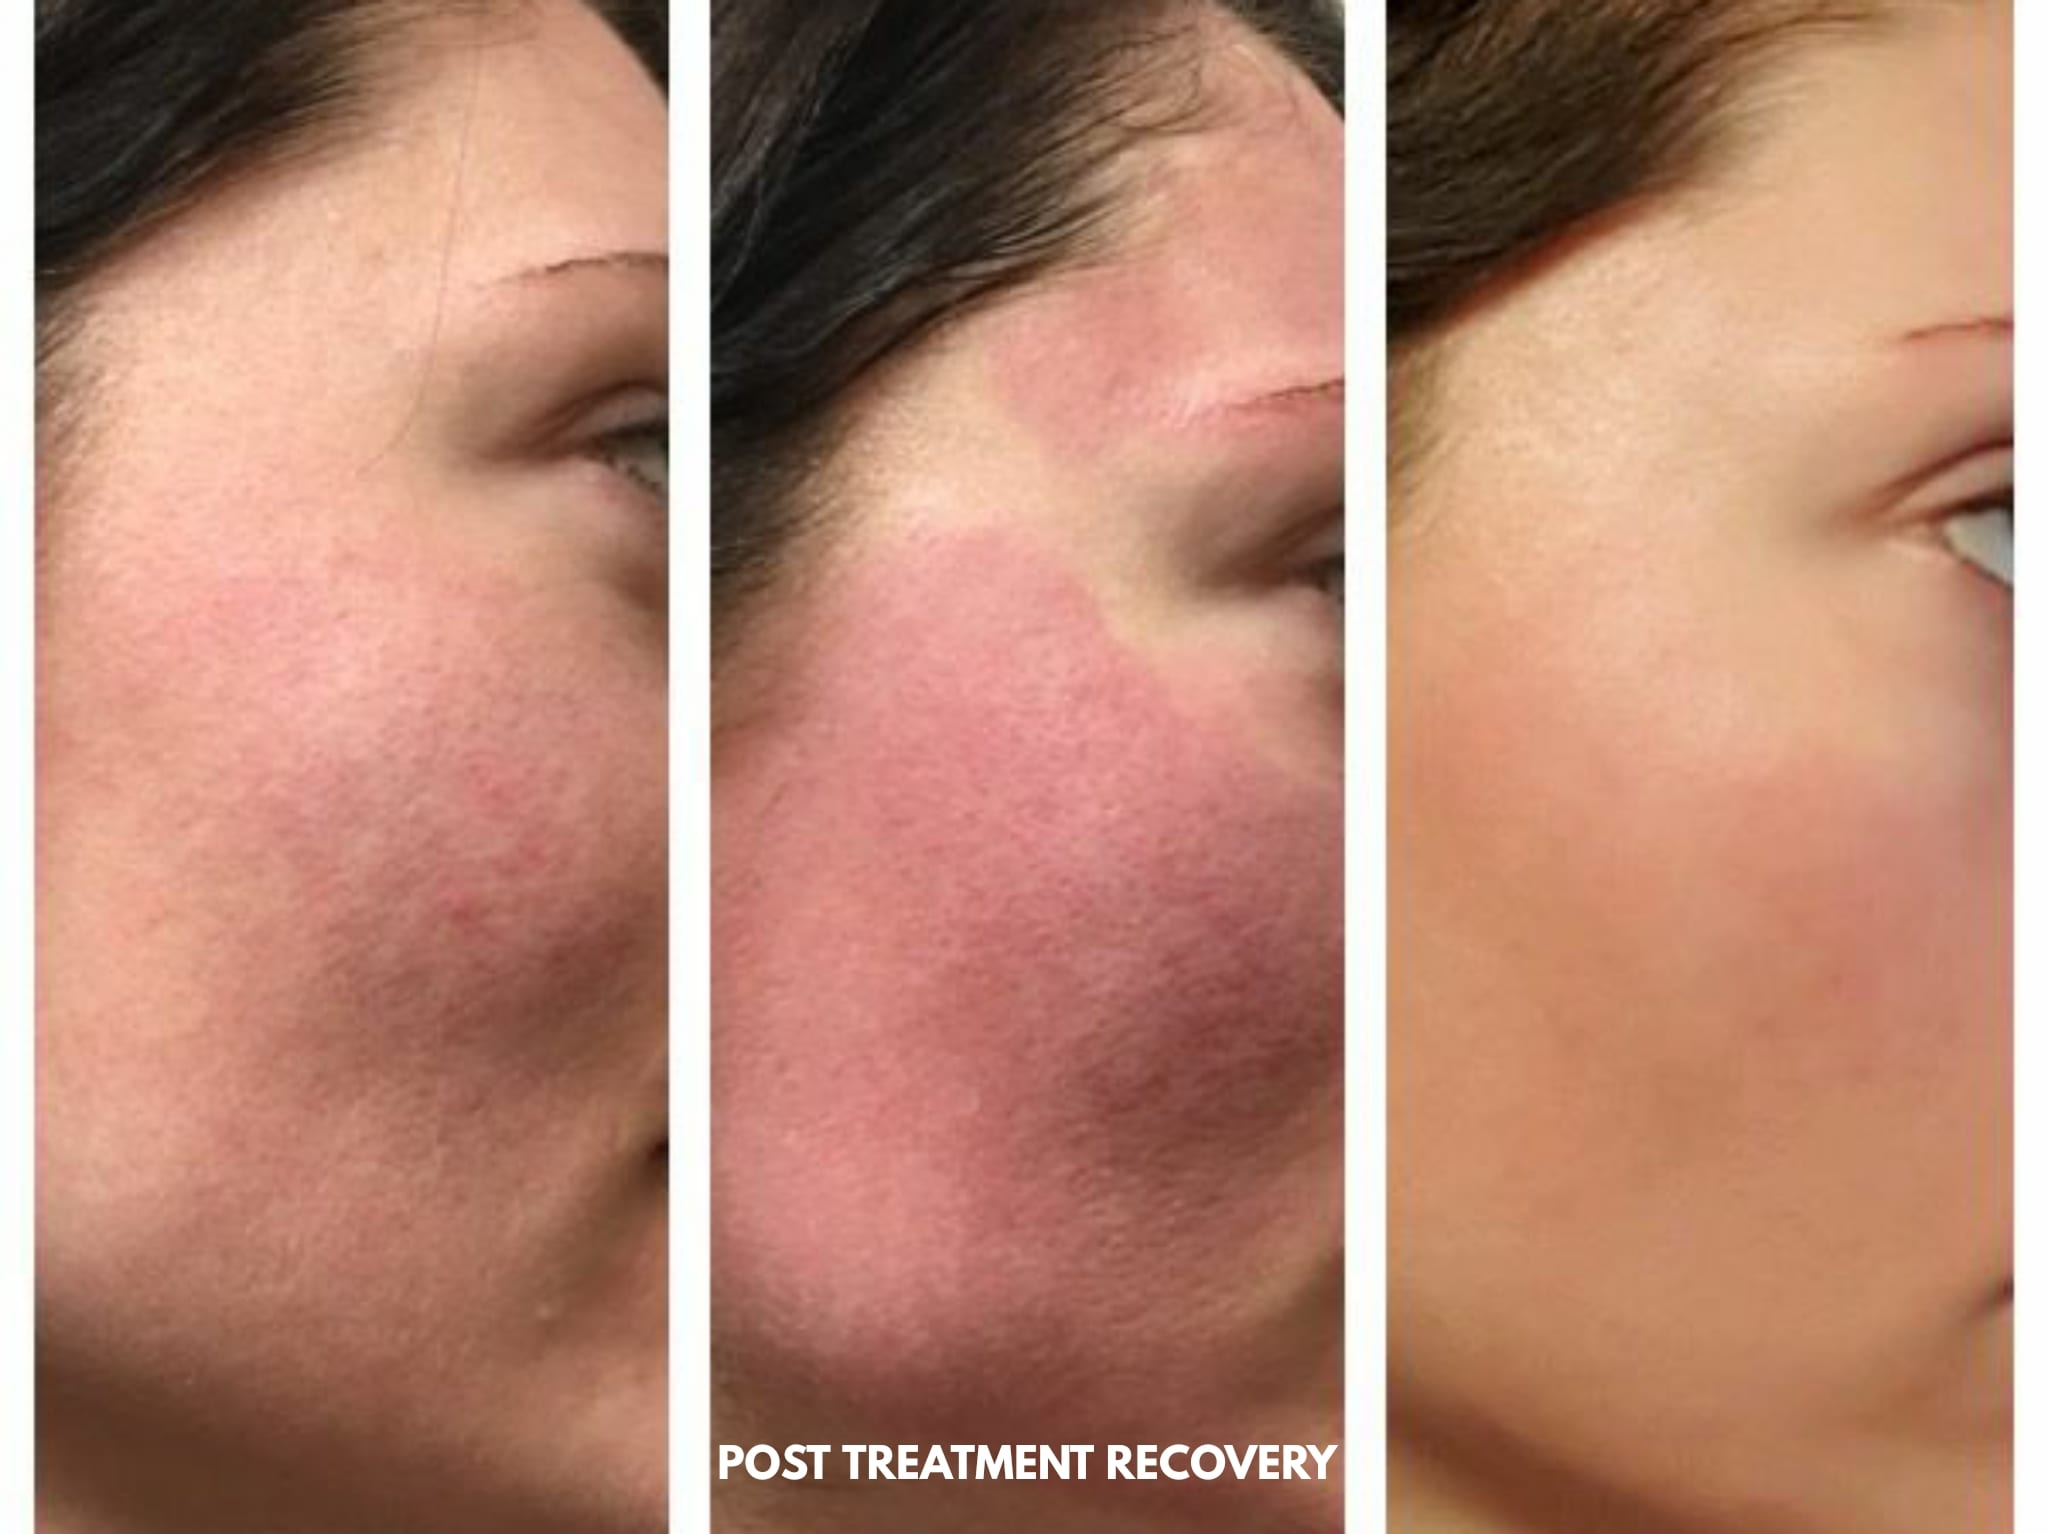 Microneedling Post Treatment